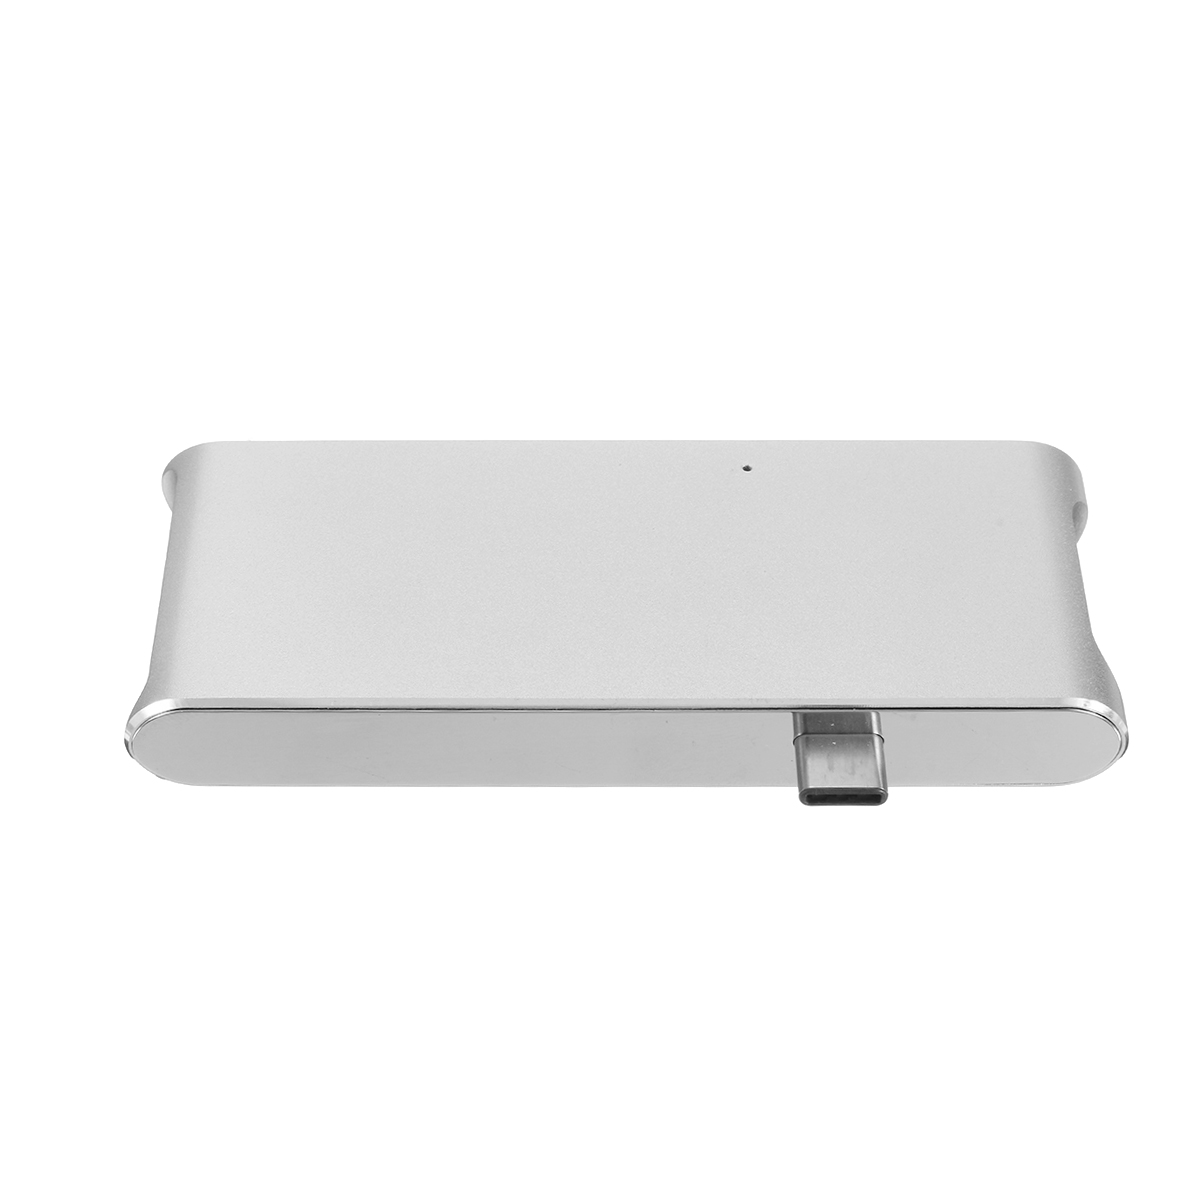 Multifunctional Type-C to 4K HDMI Type-C Charging Two-Port USB3.0 HUB TF SD Card Reader for Macbook